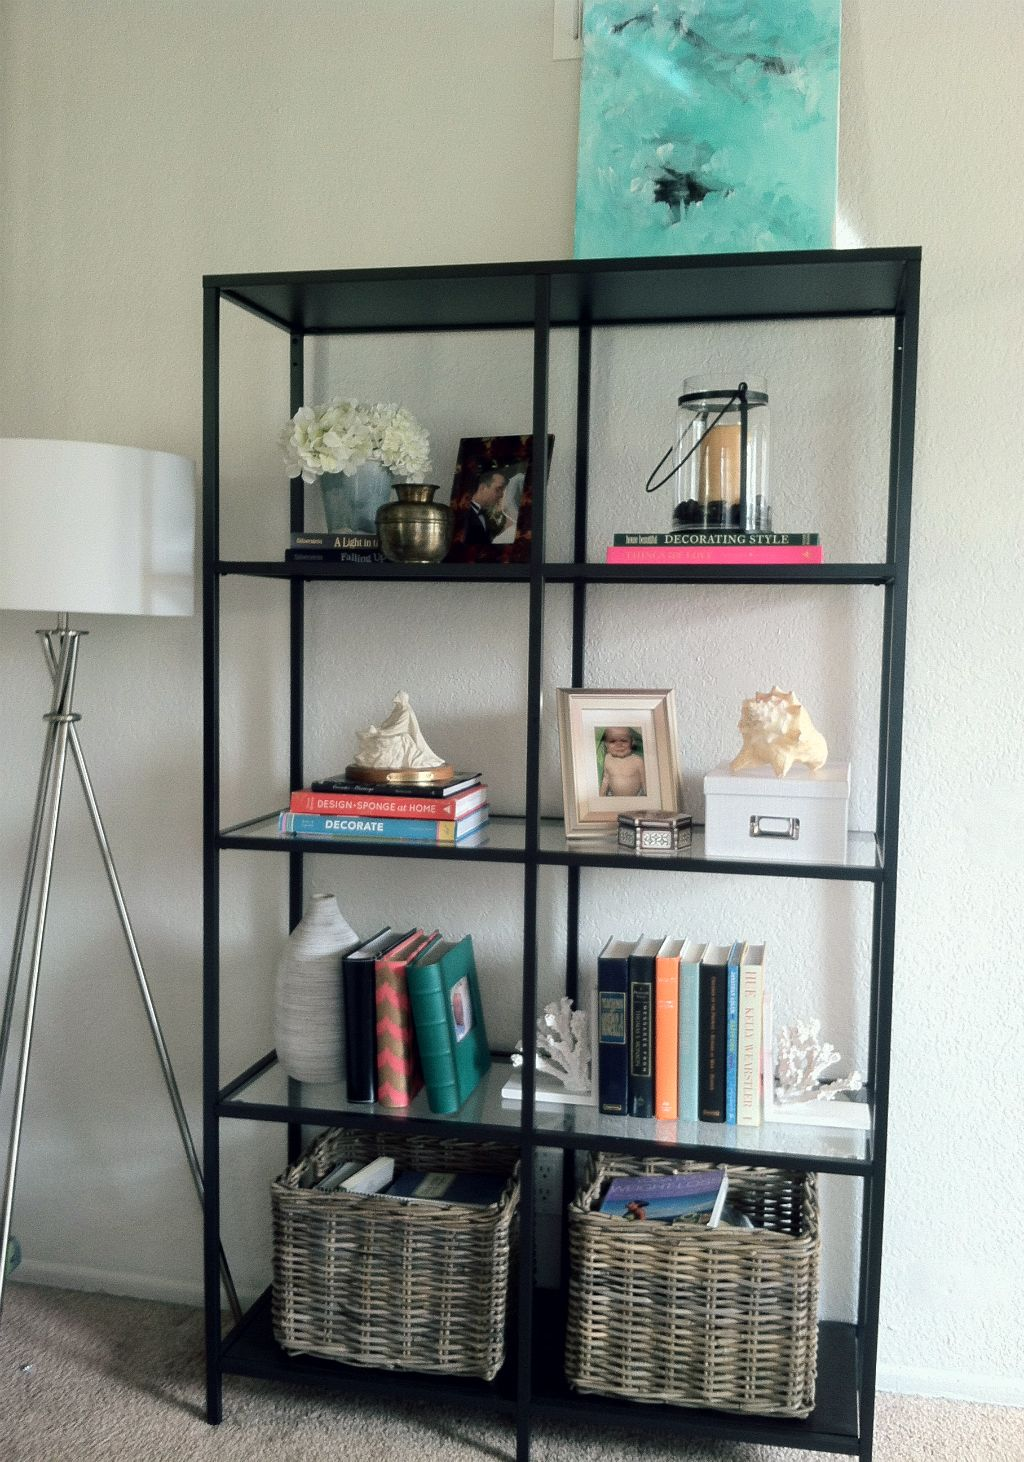 Ikea Vittsjo Bookcase In The Living Room